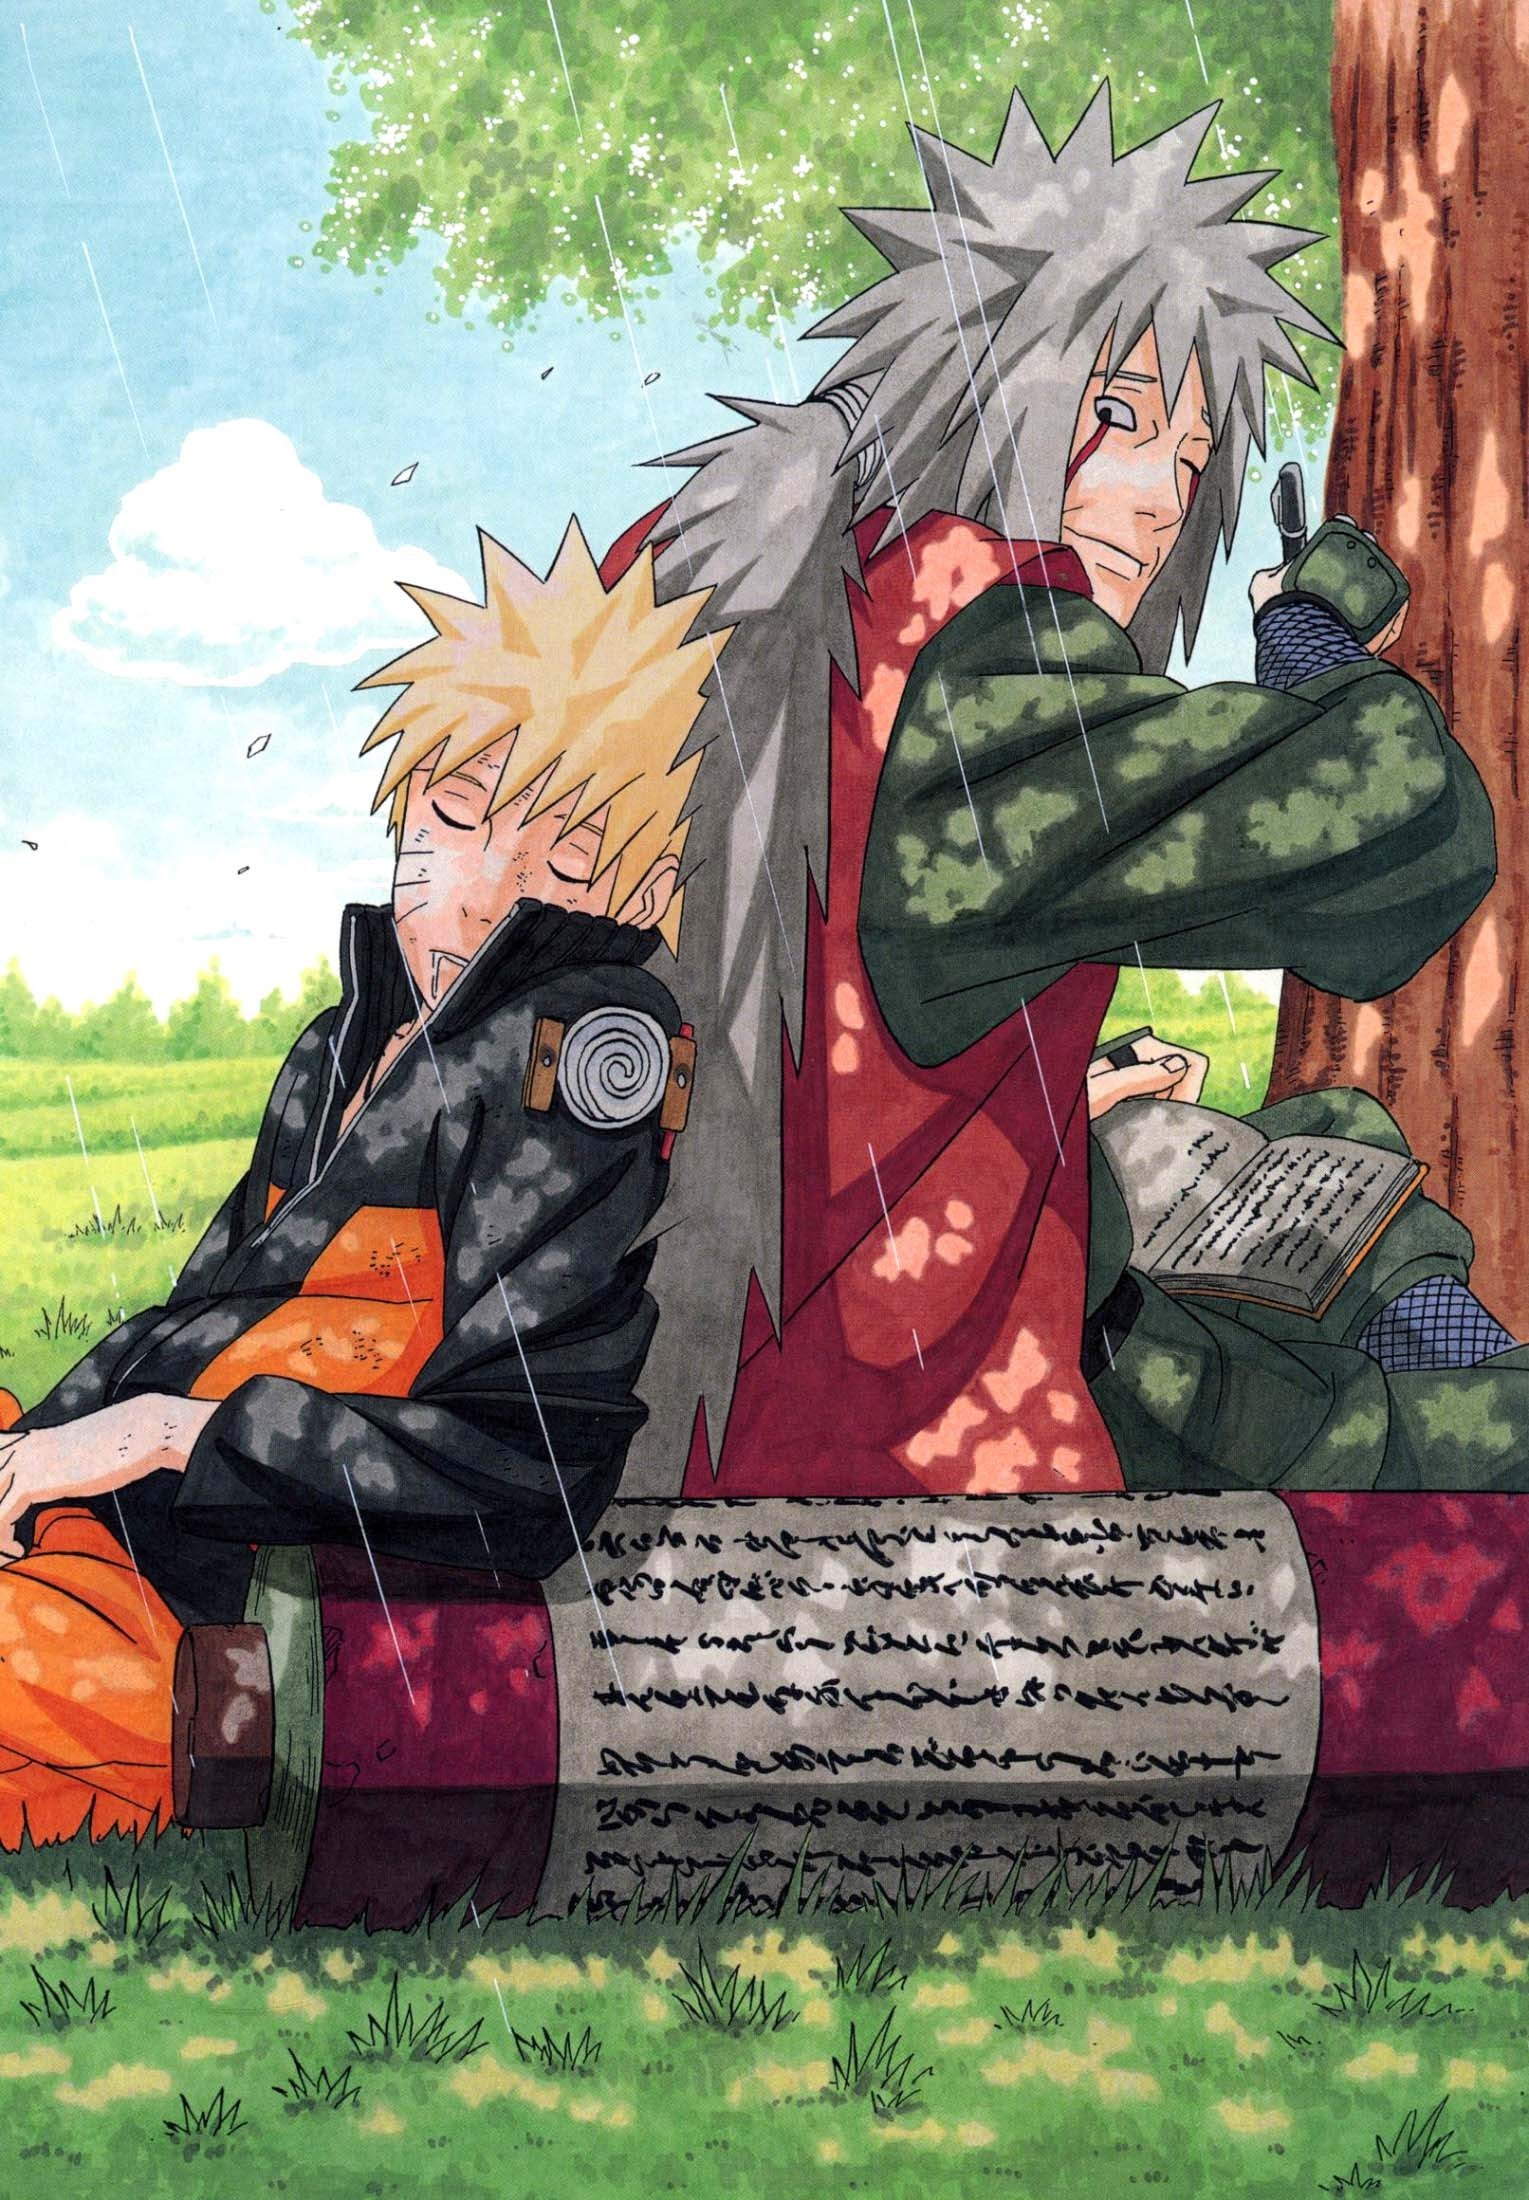 Наруто and Jiraiya